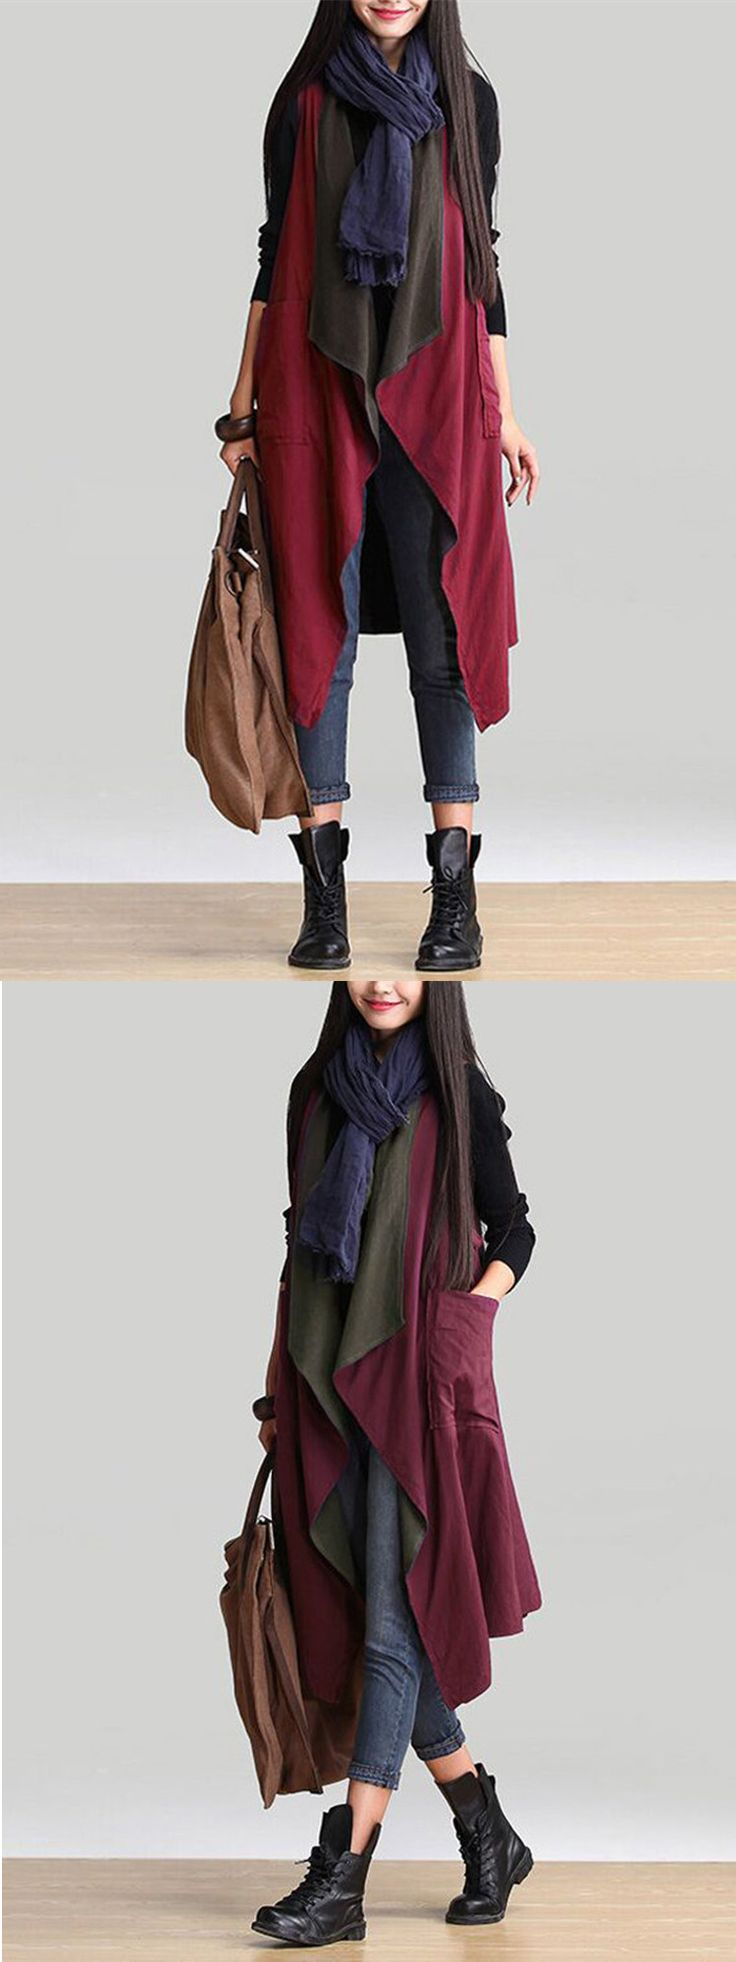 Ethnic Women Autumn Sleeveless Reversible Long Vest Cardigan